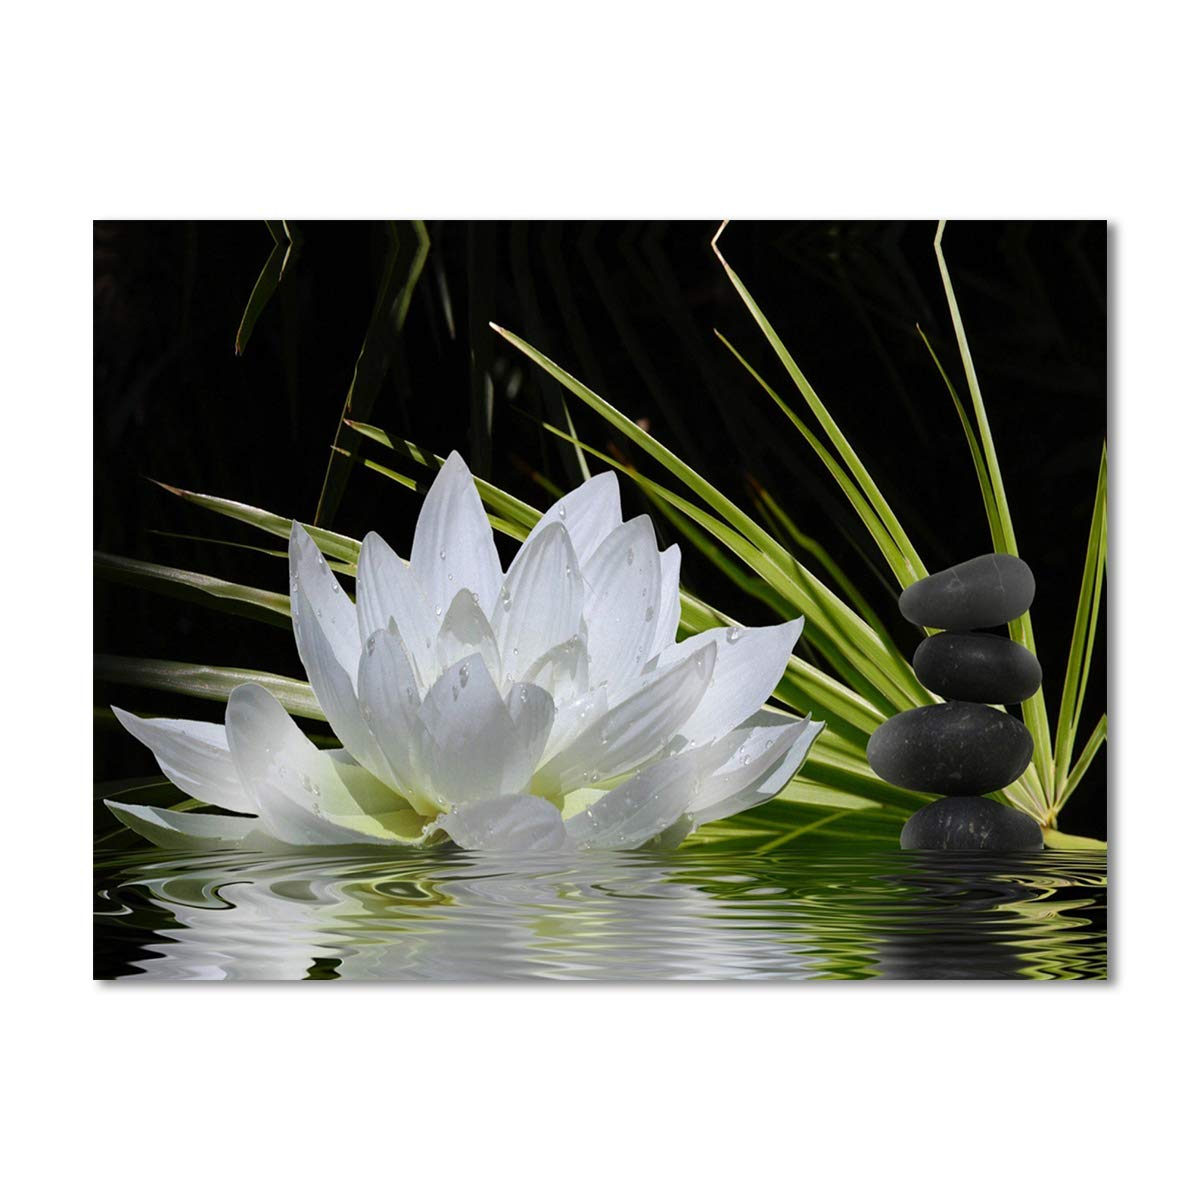 Spirit Up Art Modern Giclee Prints Framed Flower Artwork White Lotus and Black Zen Stones Picture Print to Photo Printed Paintings on Canvas Wall Art Decor for Home Office Decorations 12 by 16 inch